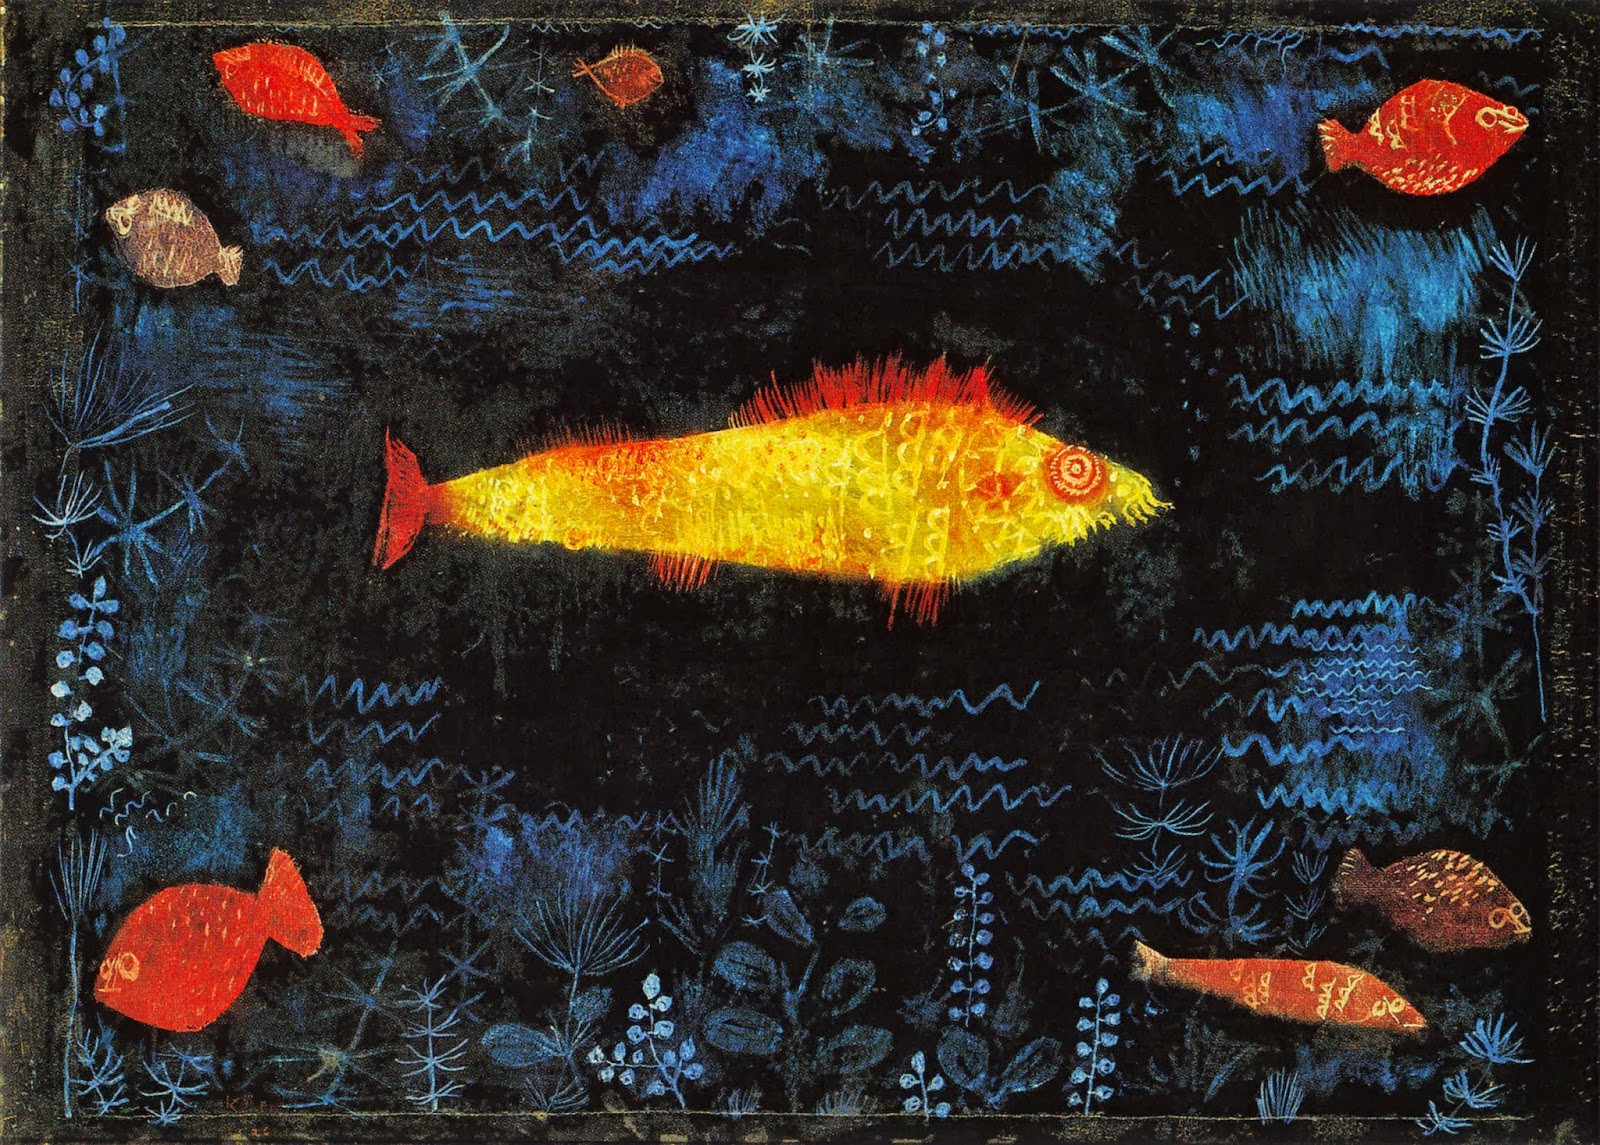 paul-klee-golden-fish.jpg